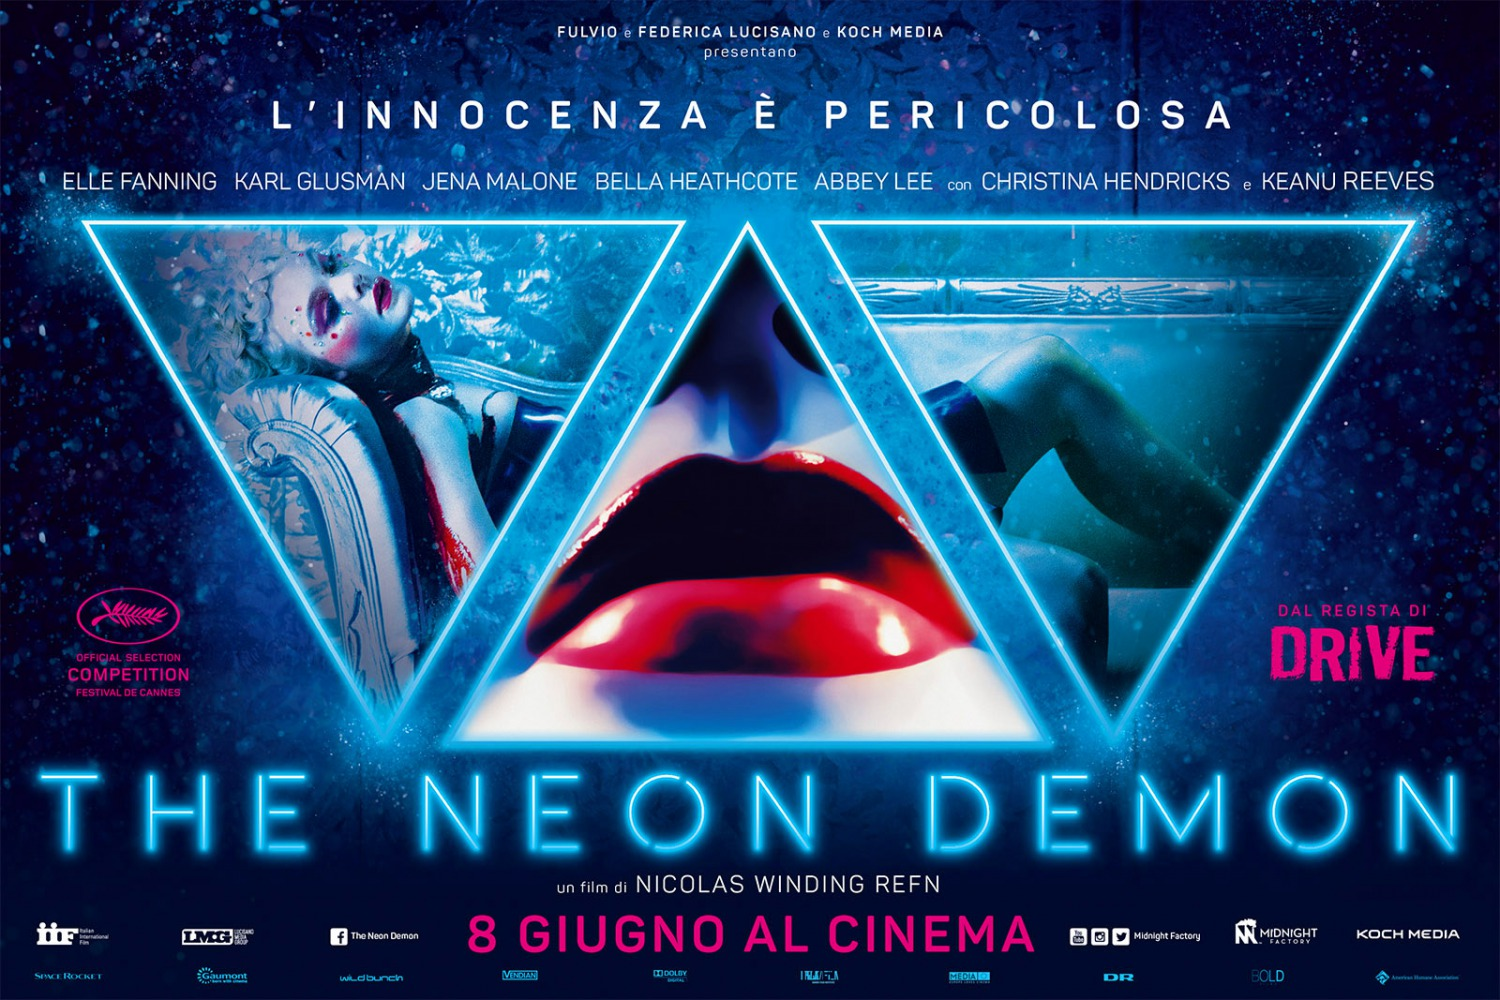 The Neon Demon-19Maio2016 (8)